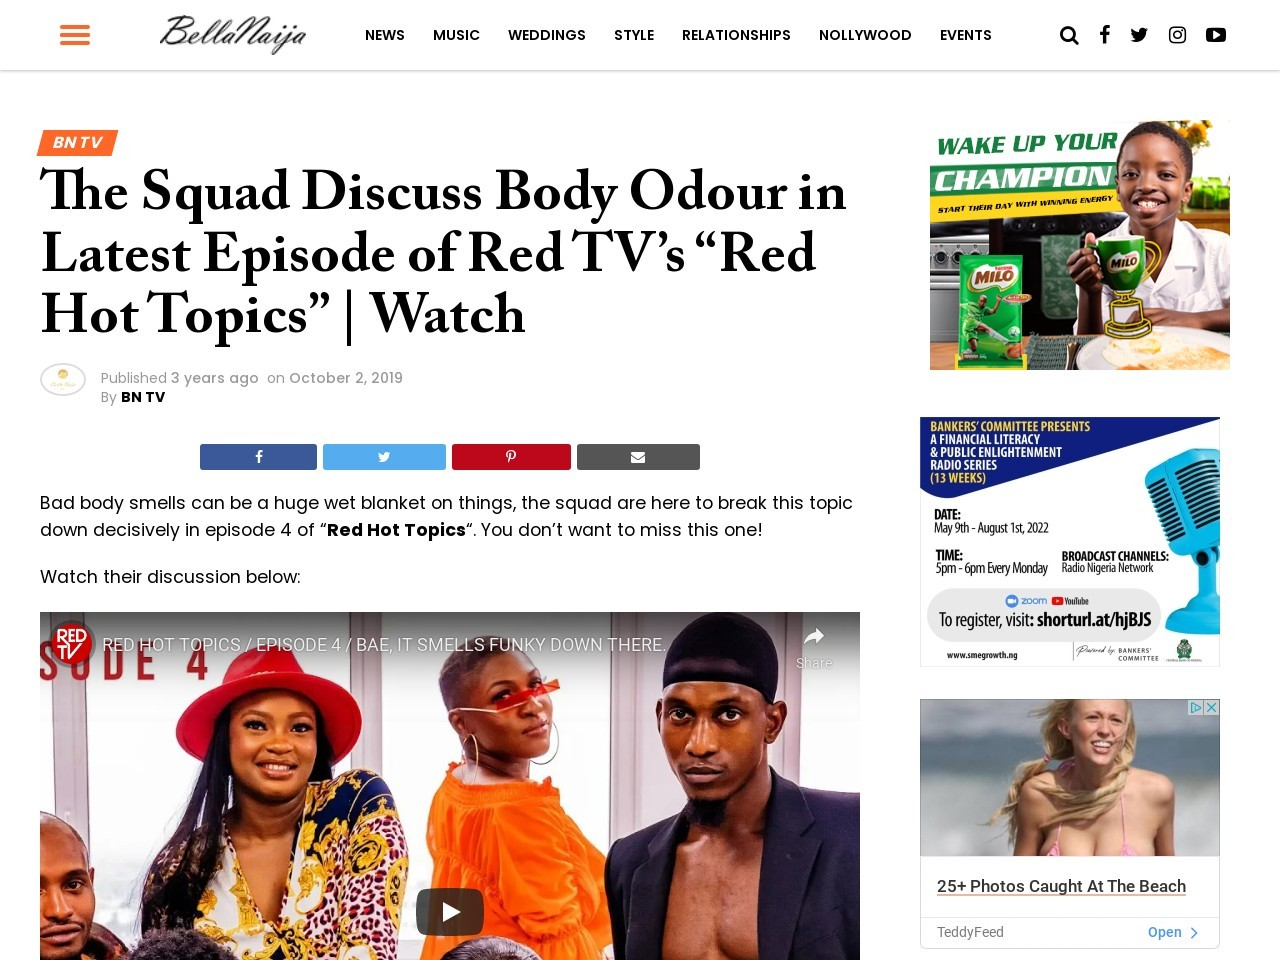 """The Squad Discuss Body Odour in Latest Episode of Red TV's """"Red Hot Topics"""" 